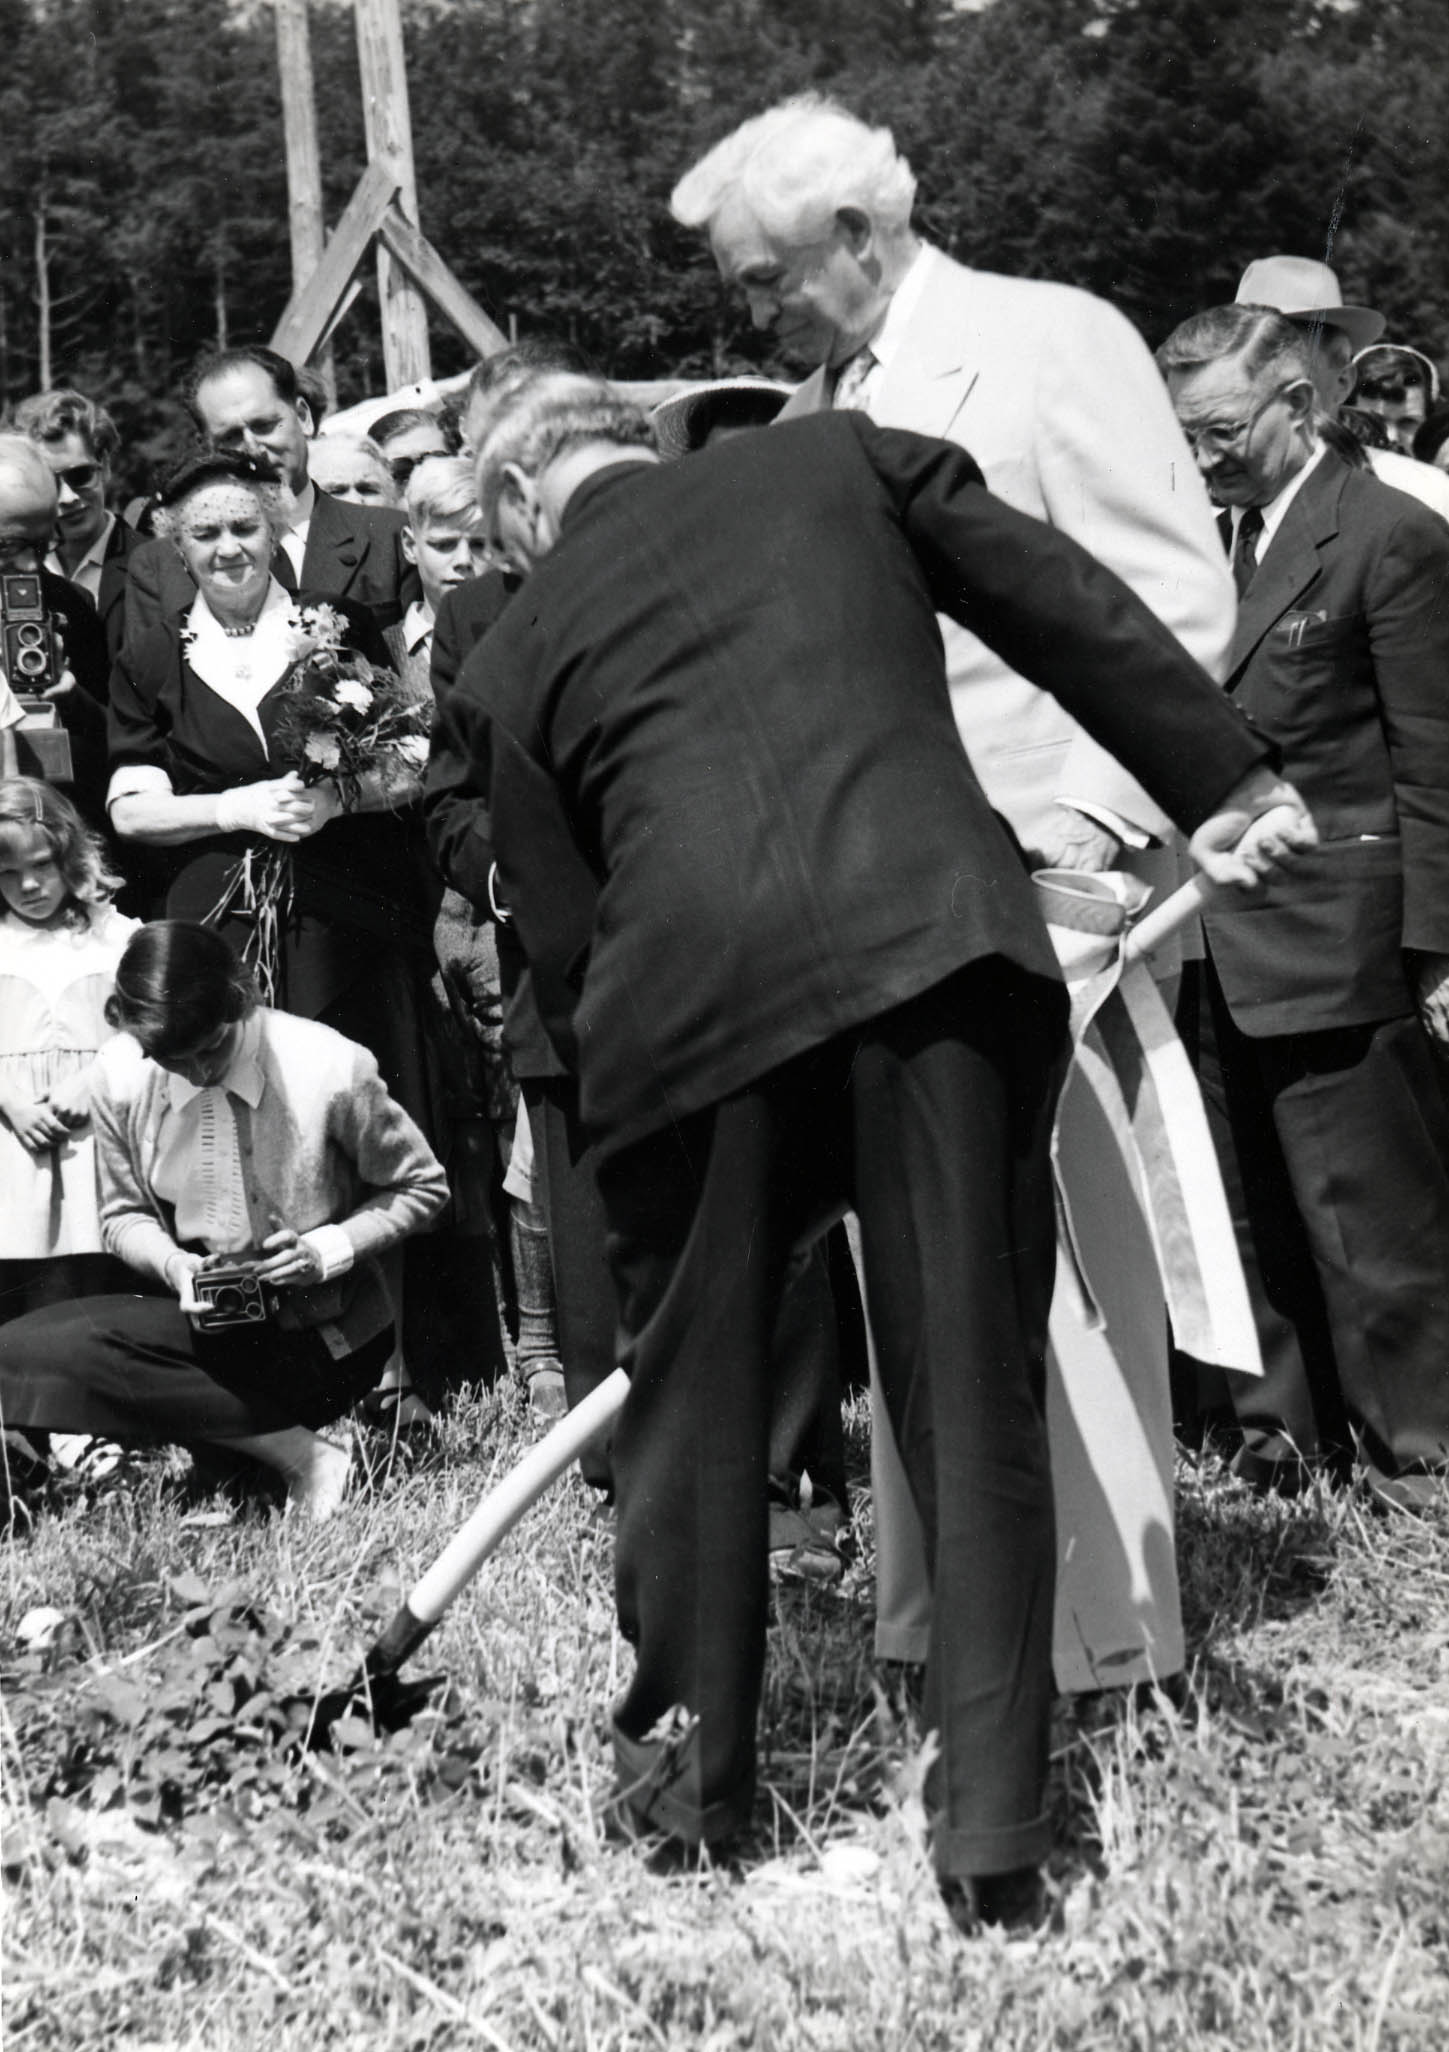 LDS Church President David O. McKay at the site dedication and groundbreaking for the Bern Switzerland Temple in 1953.